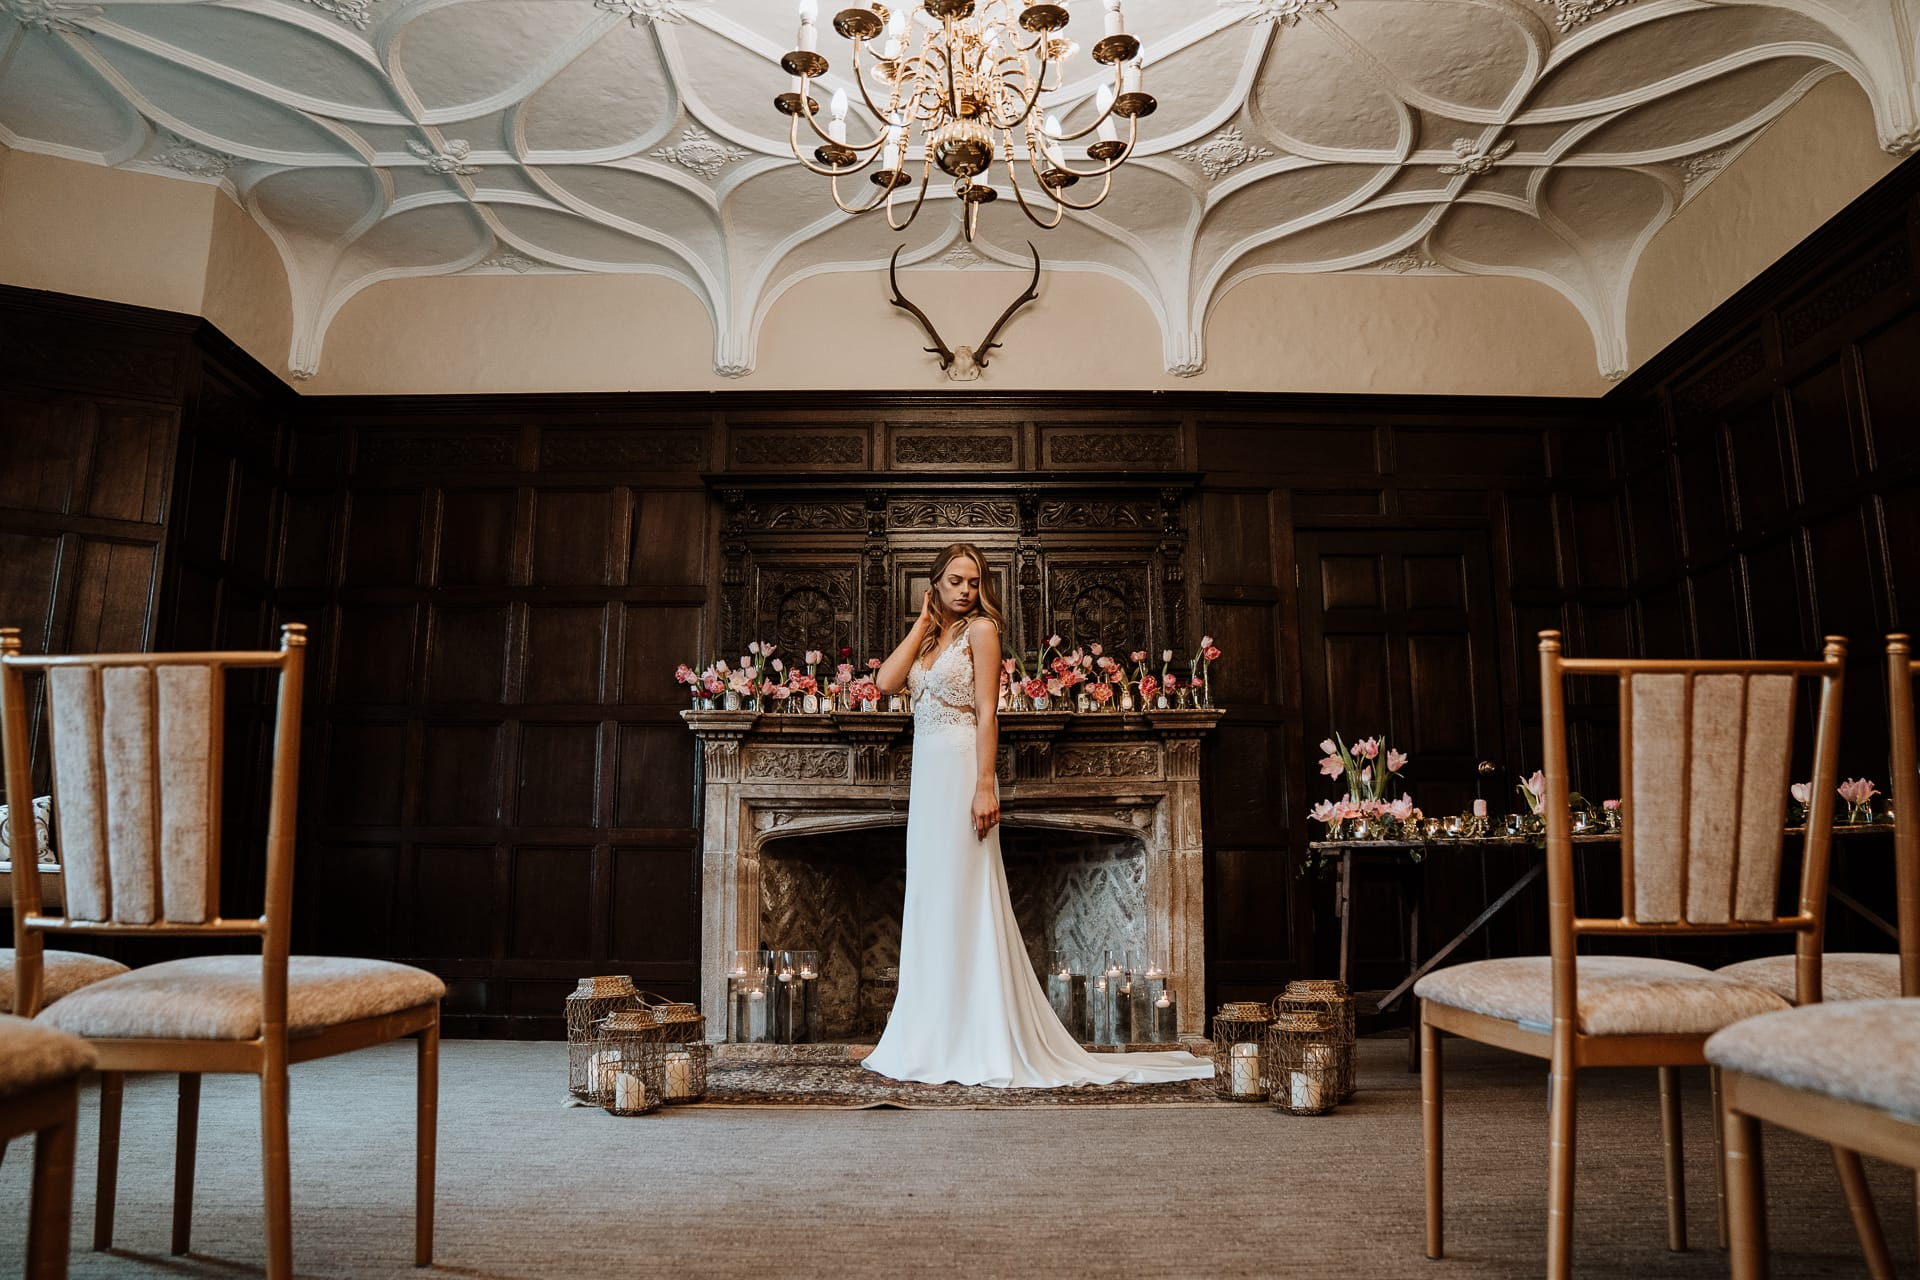 Bride in front of grand fireplace in Eastwell Manor Ceremony room